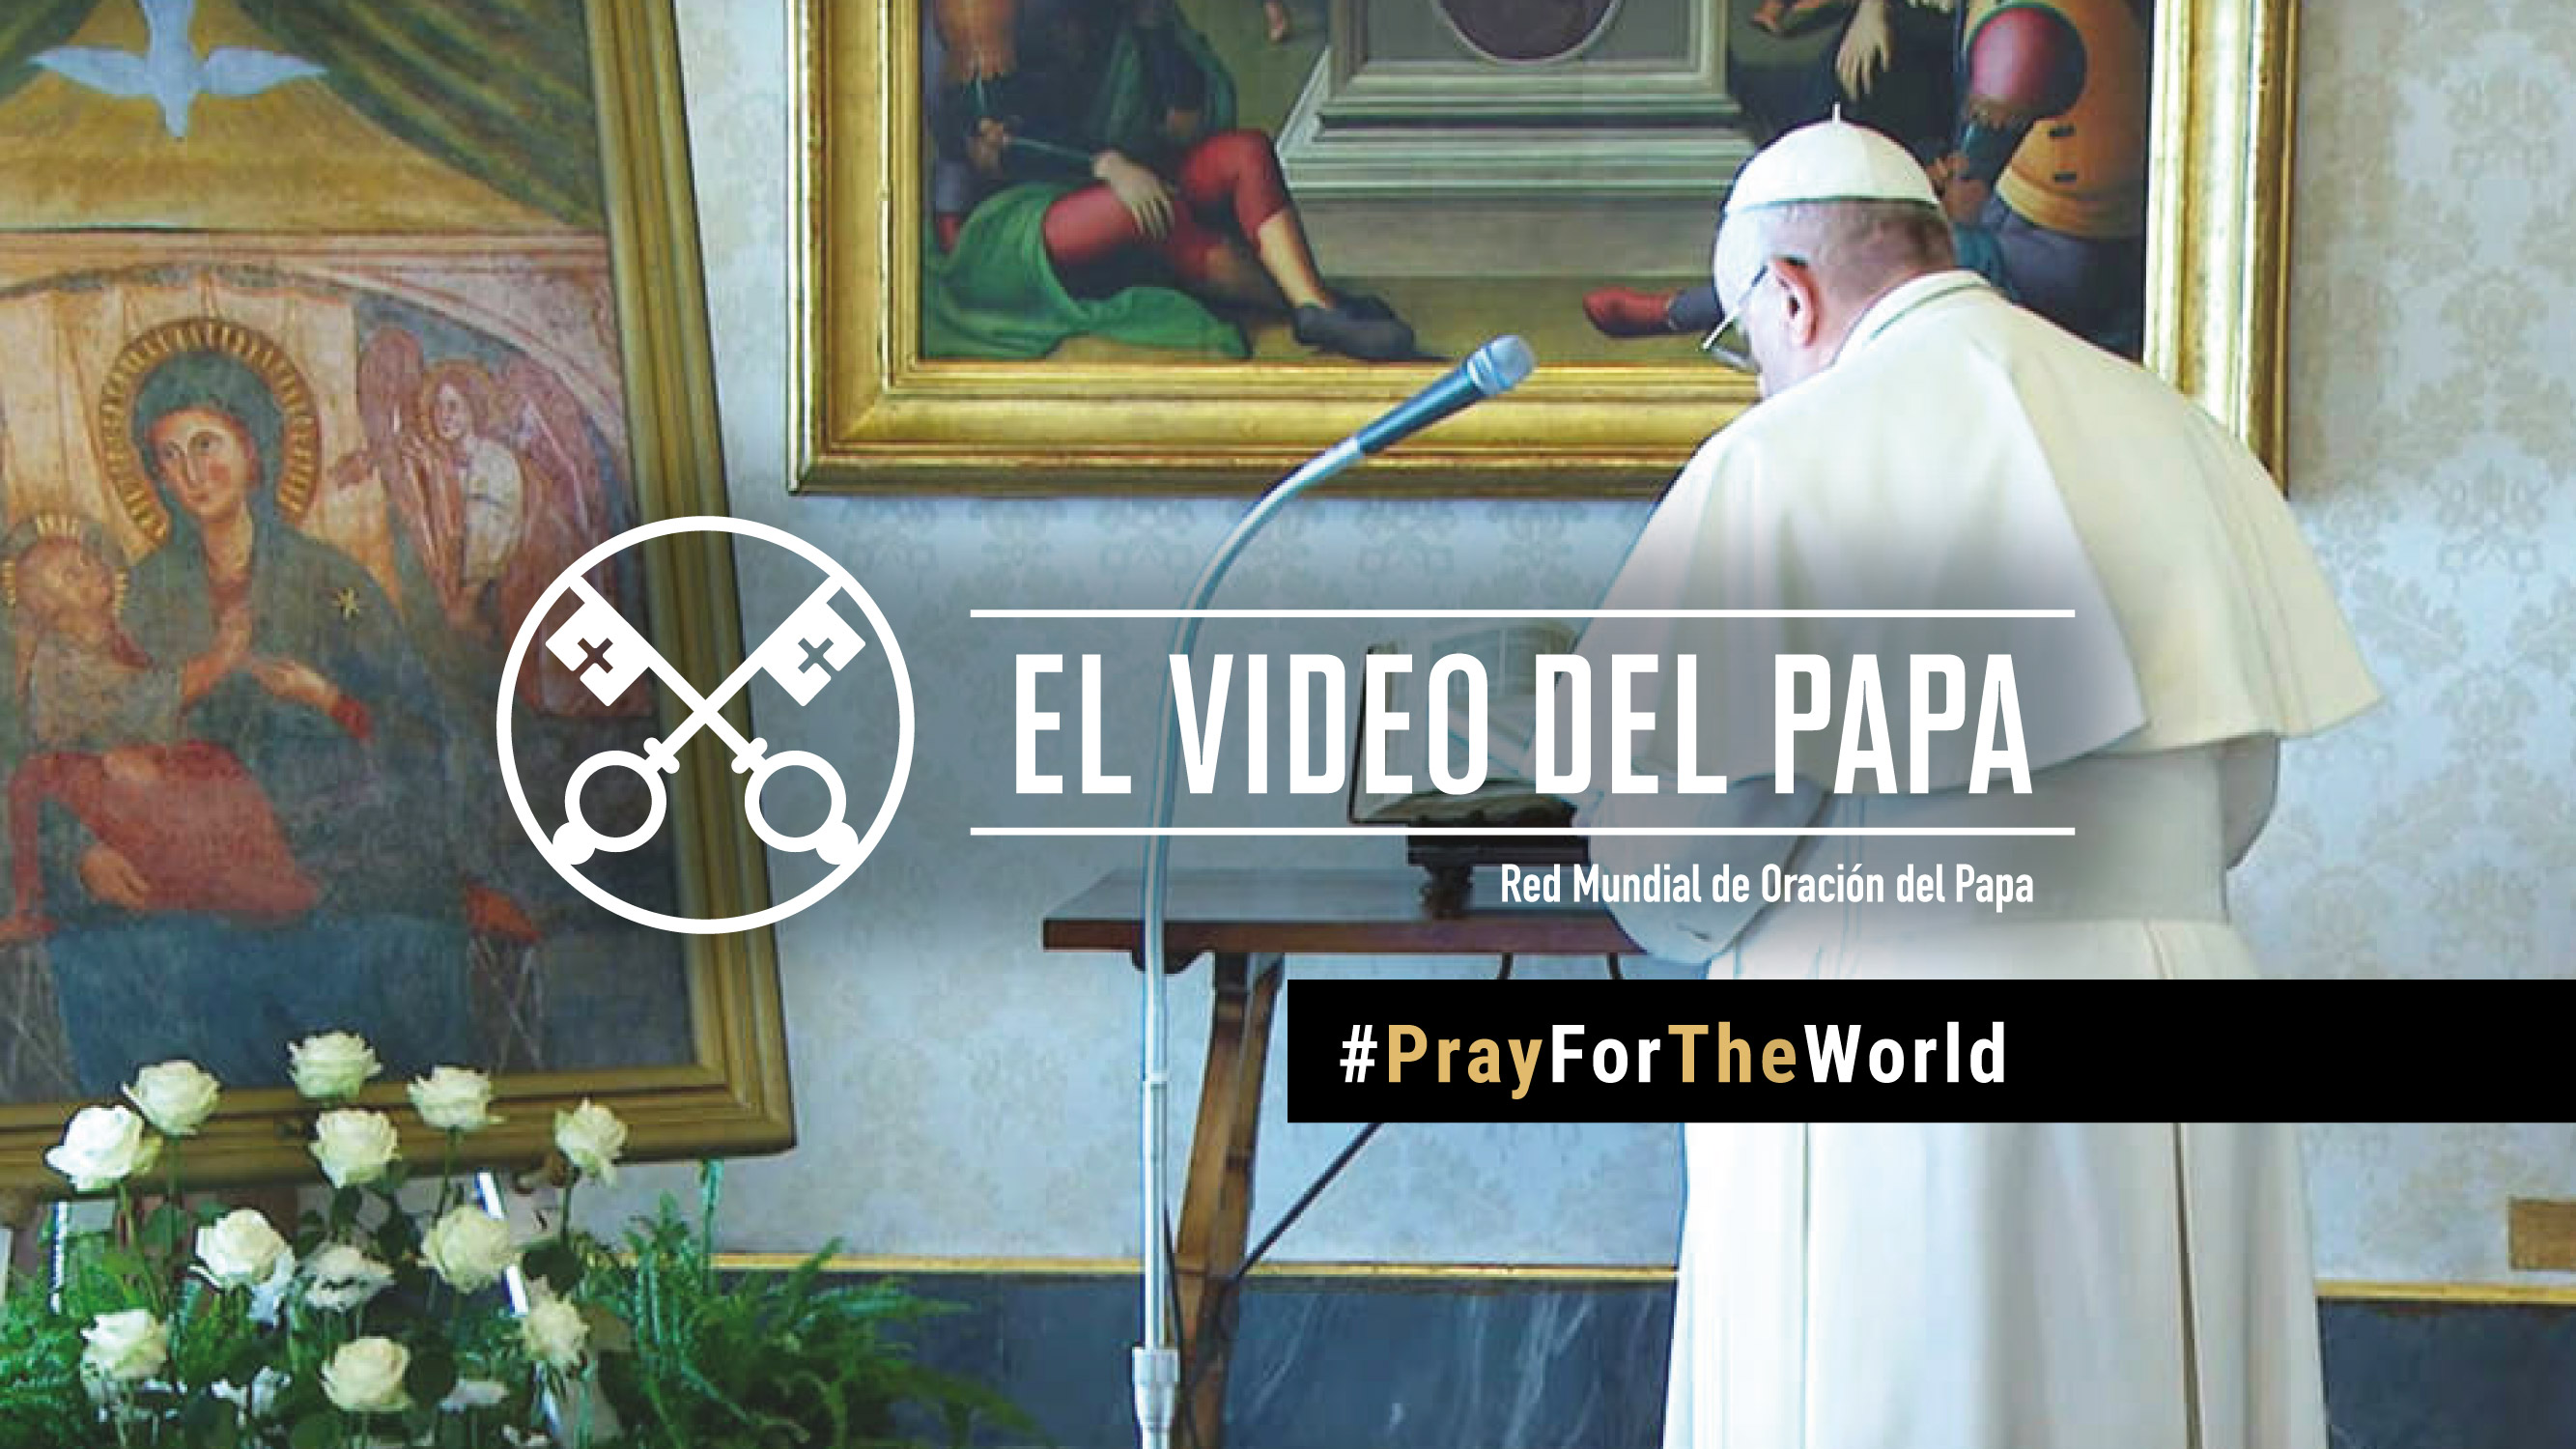 Official Image - TPV PFTW 2020 ES - El Video del Papa - #PrayForTheWorld